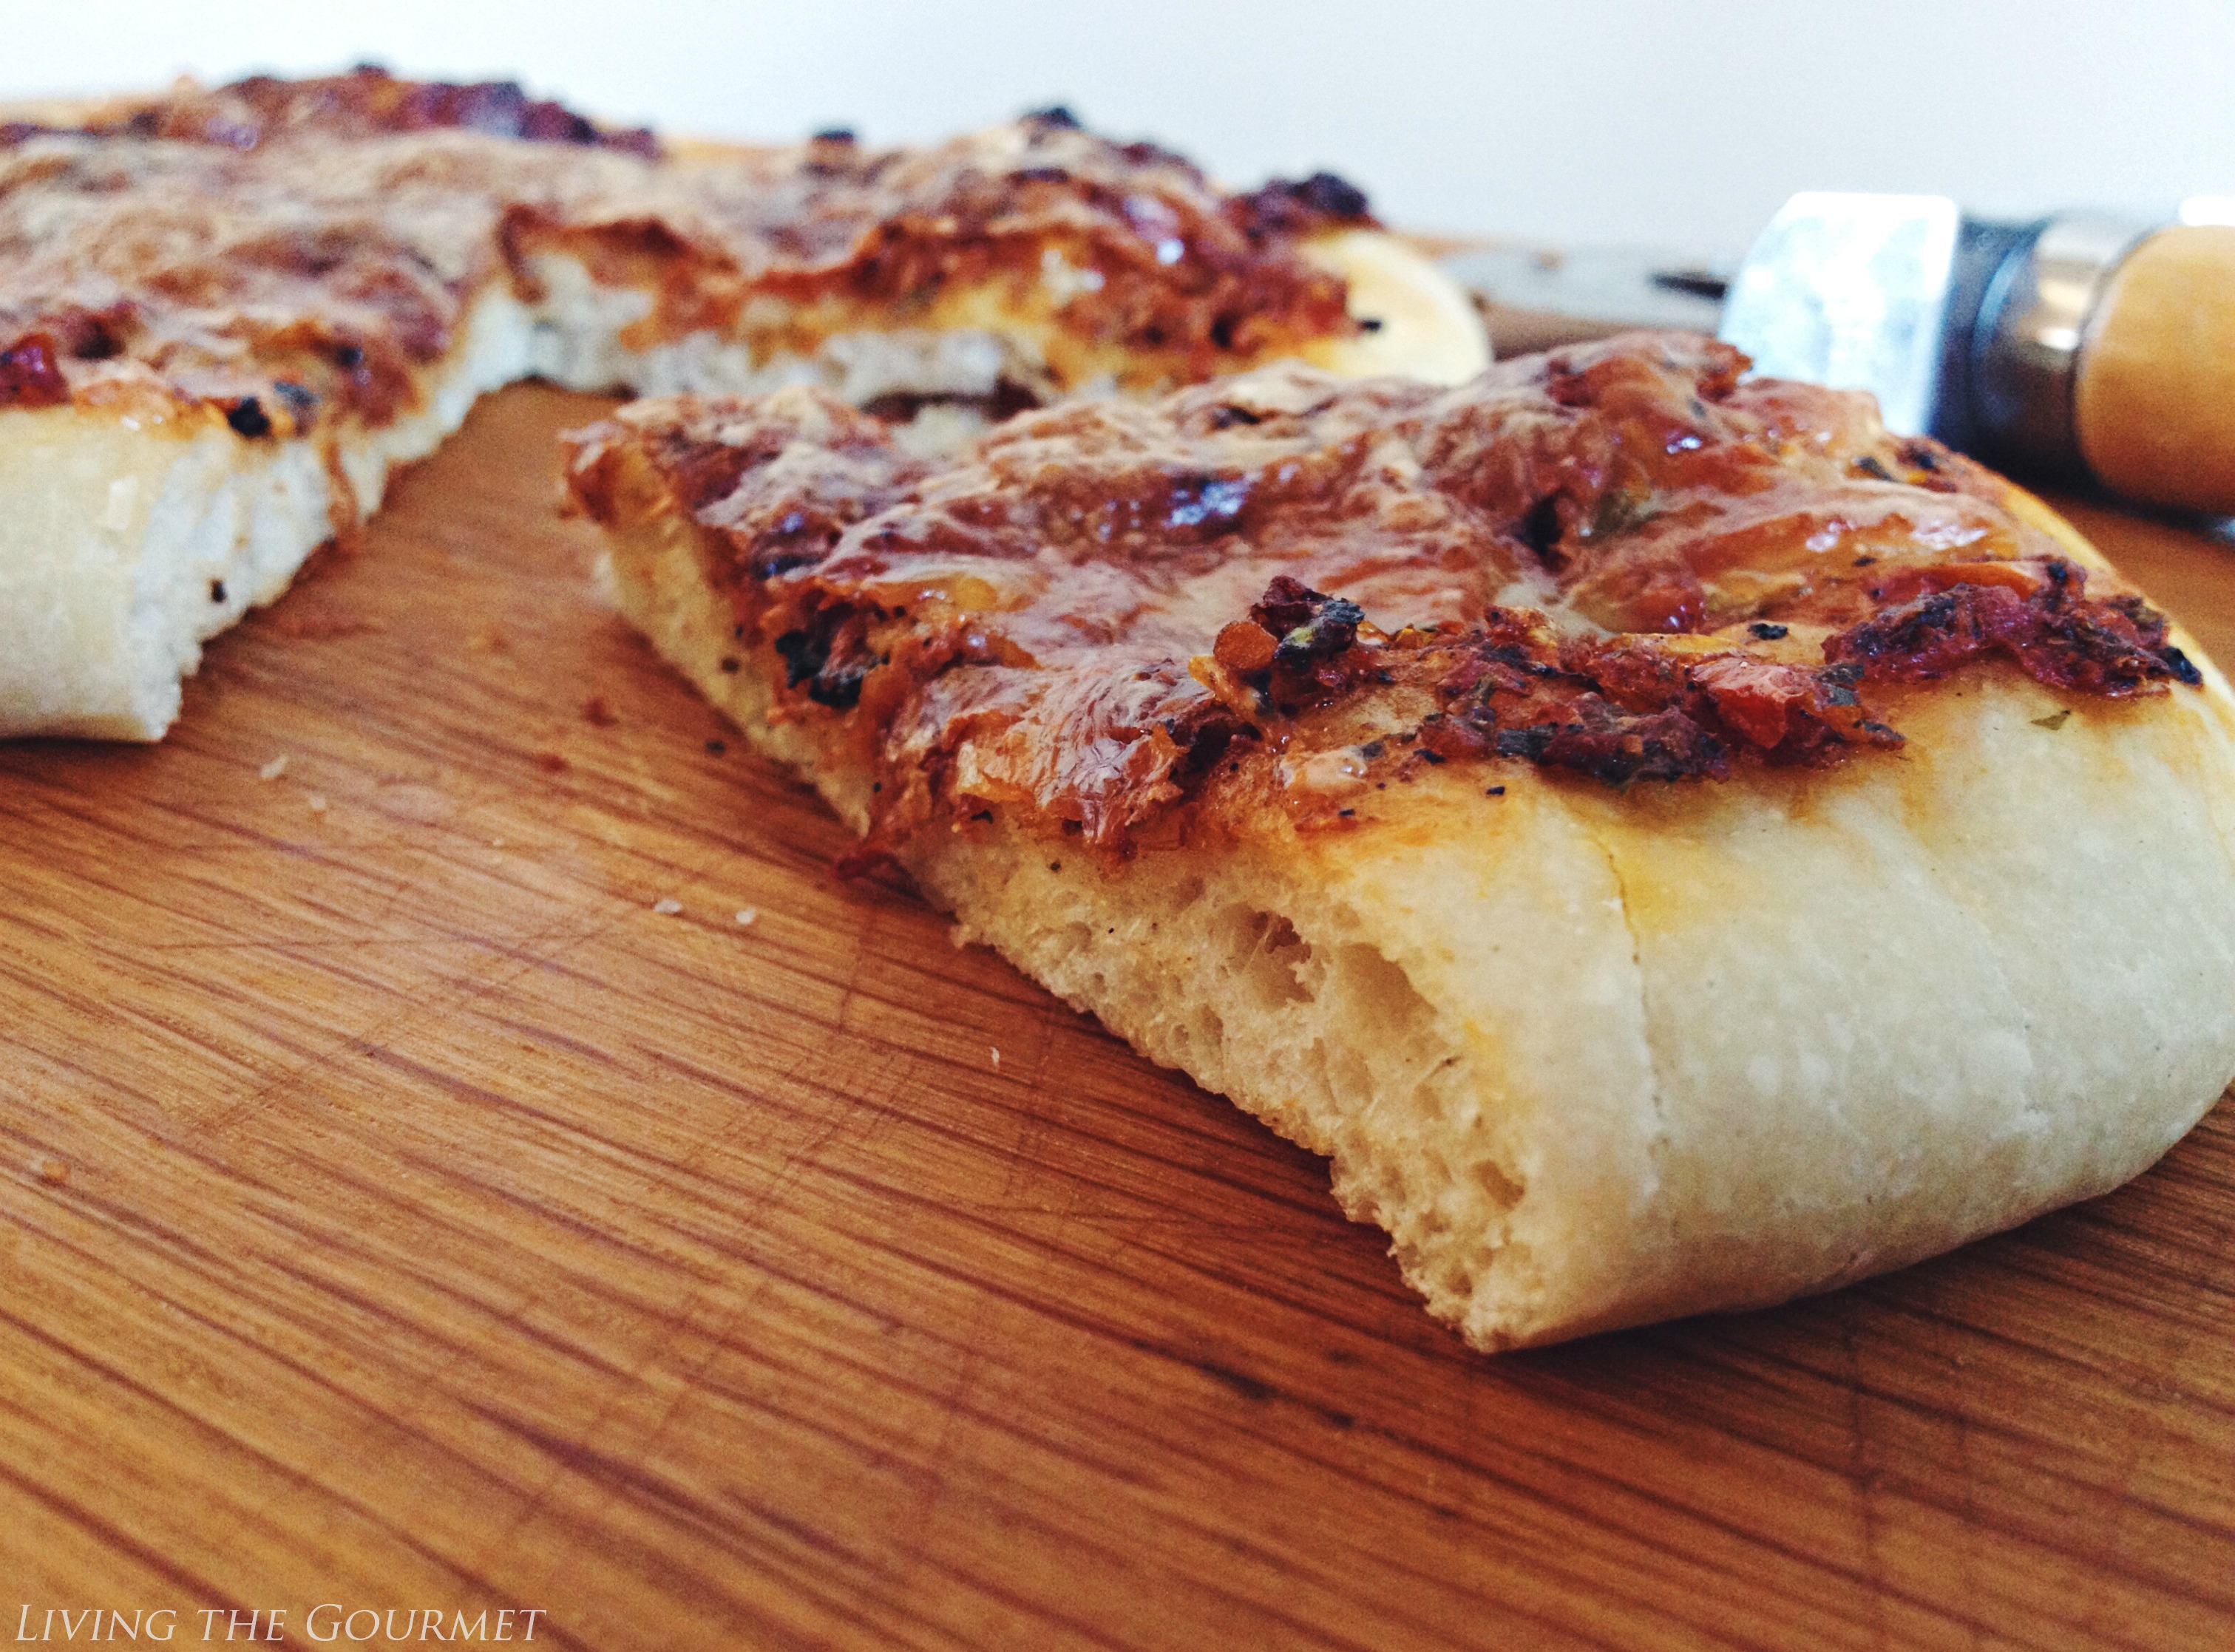 Oven Roasted Tomato Pizza